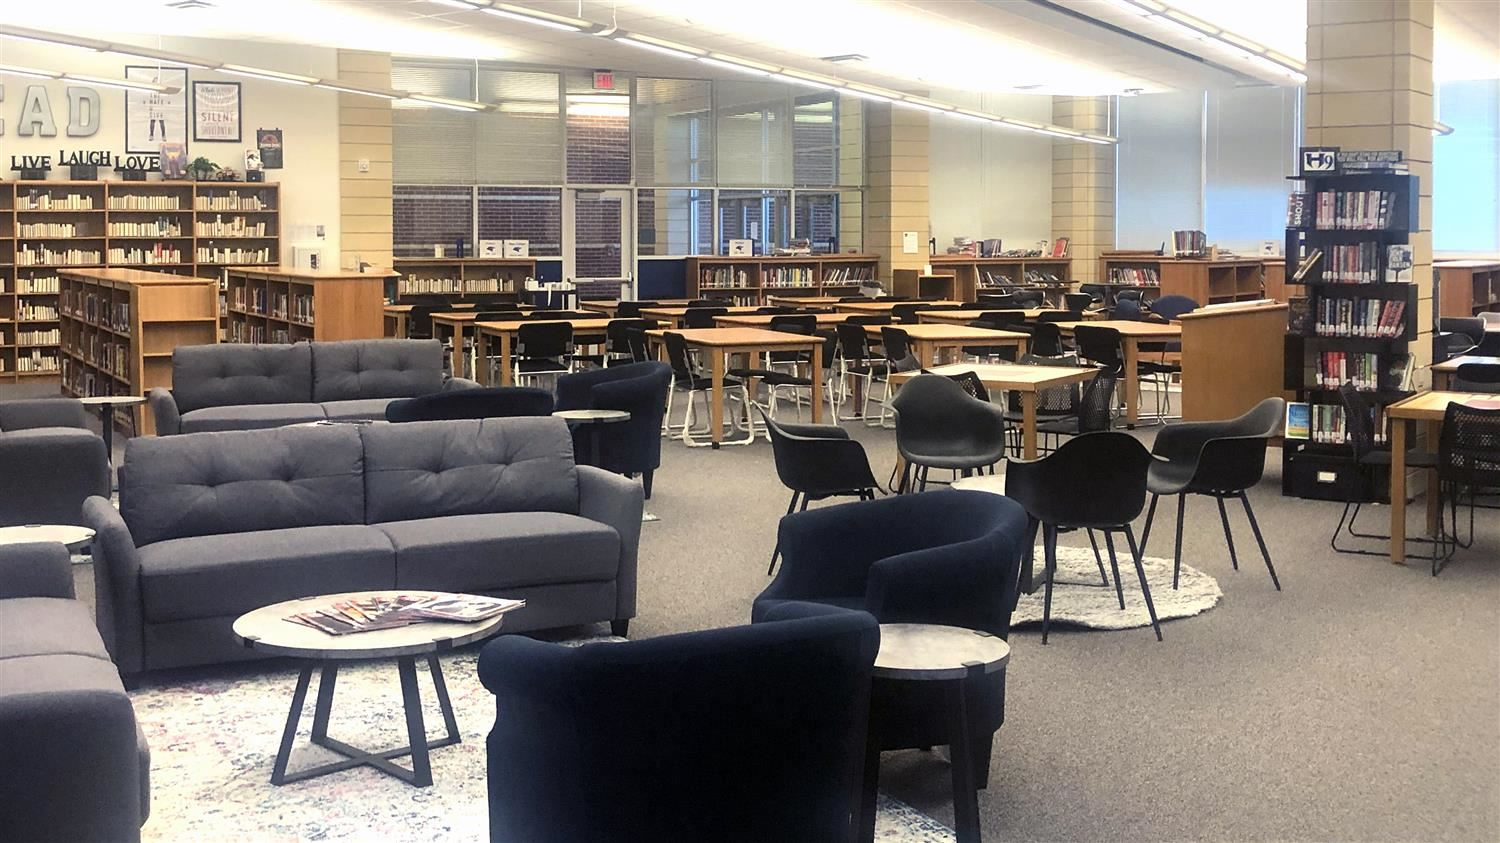 Hebron 9 Library Media Specialist Builds on Dream